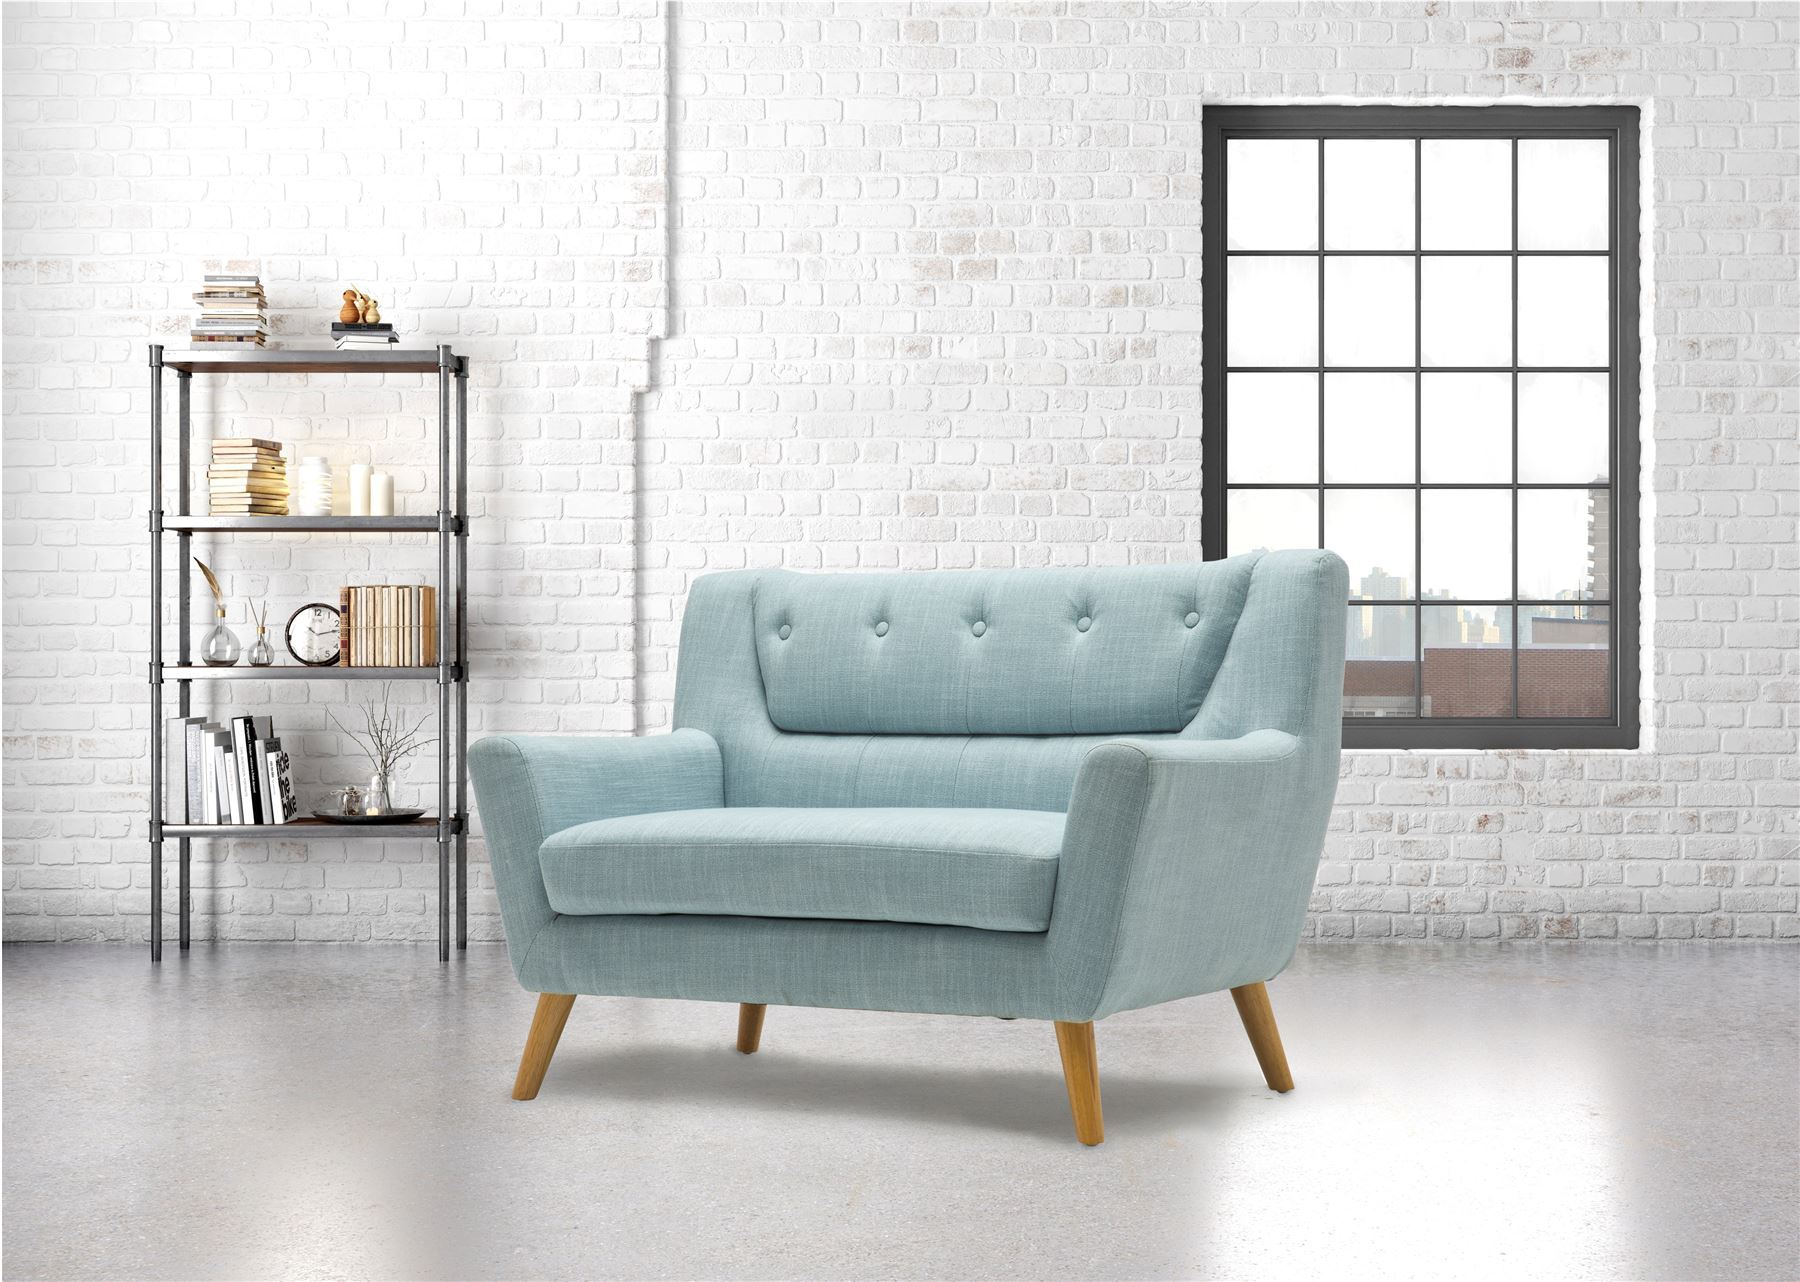 Birlea Lambeth 2 Seater Duck Egg Blue Medium Sofa Settee Scandinavian Retro